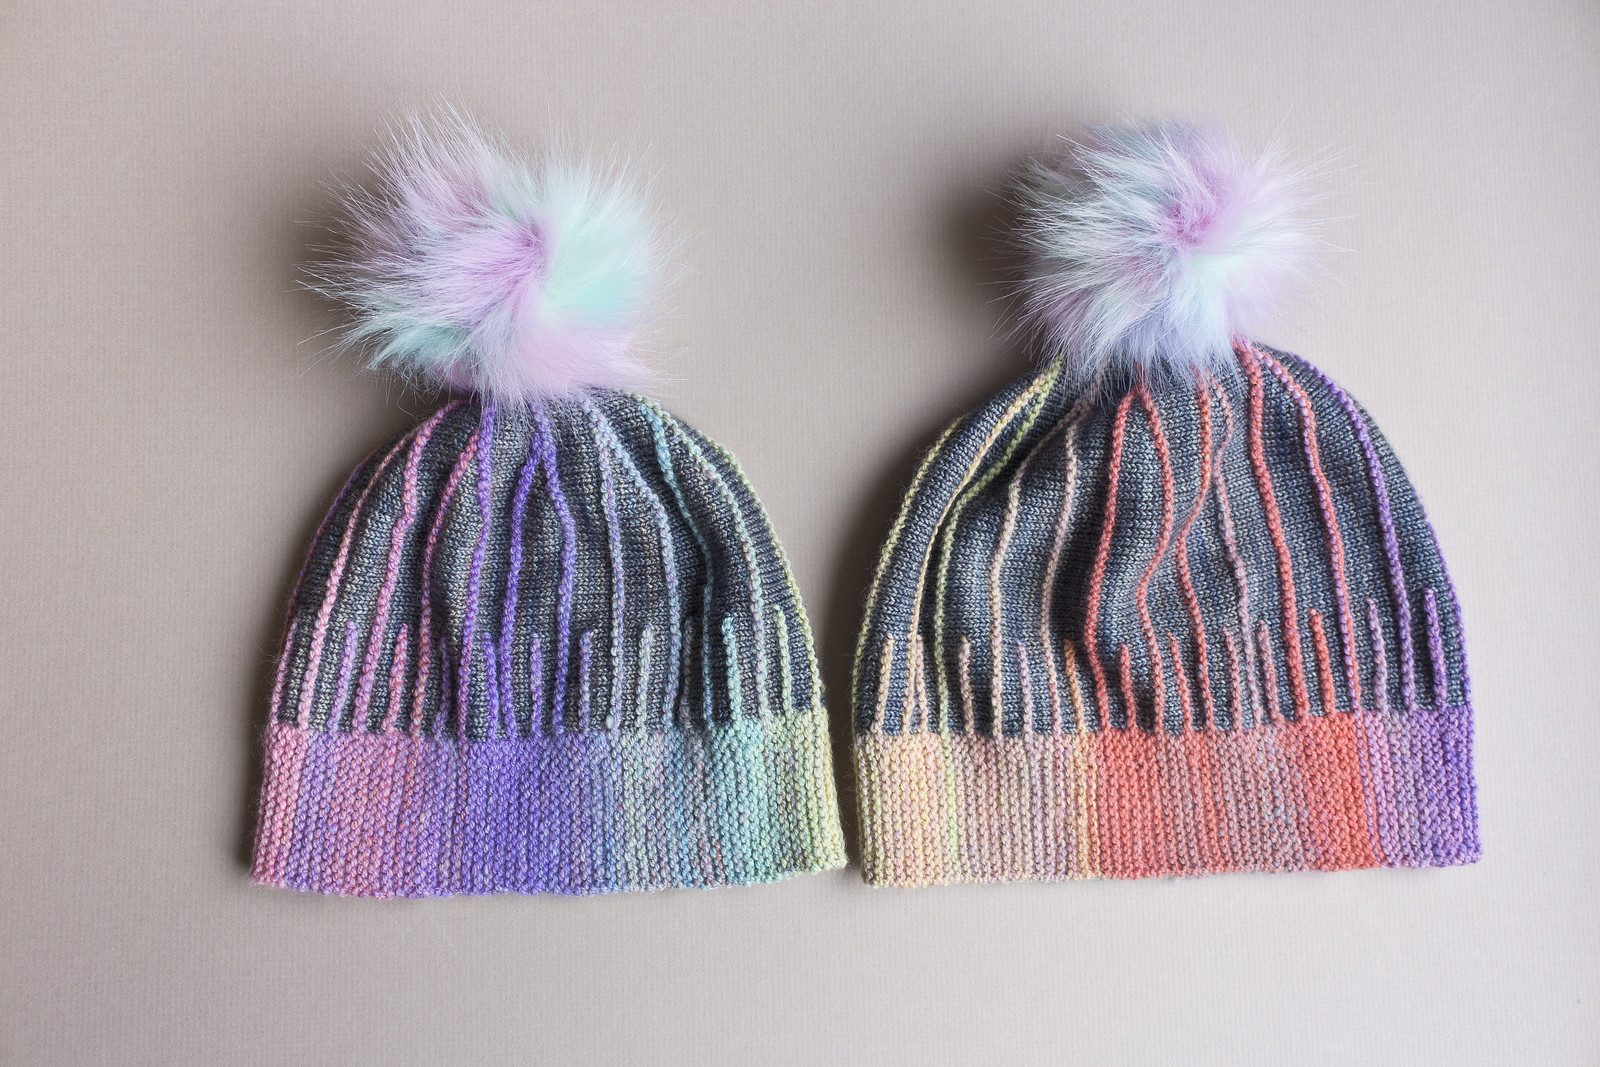 Two Misura hats knit by Mimi Codd from a Woolly Wormhead pattern, knit sideways from handspun